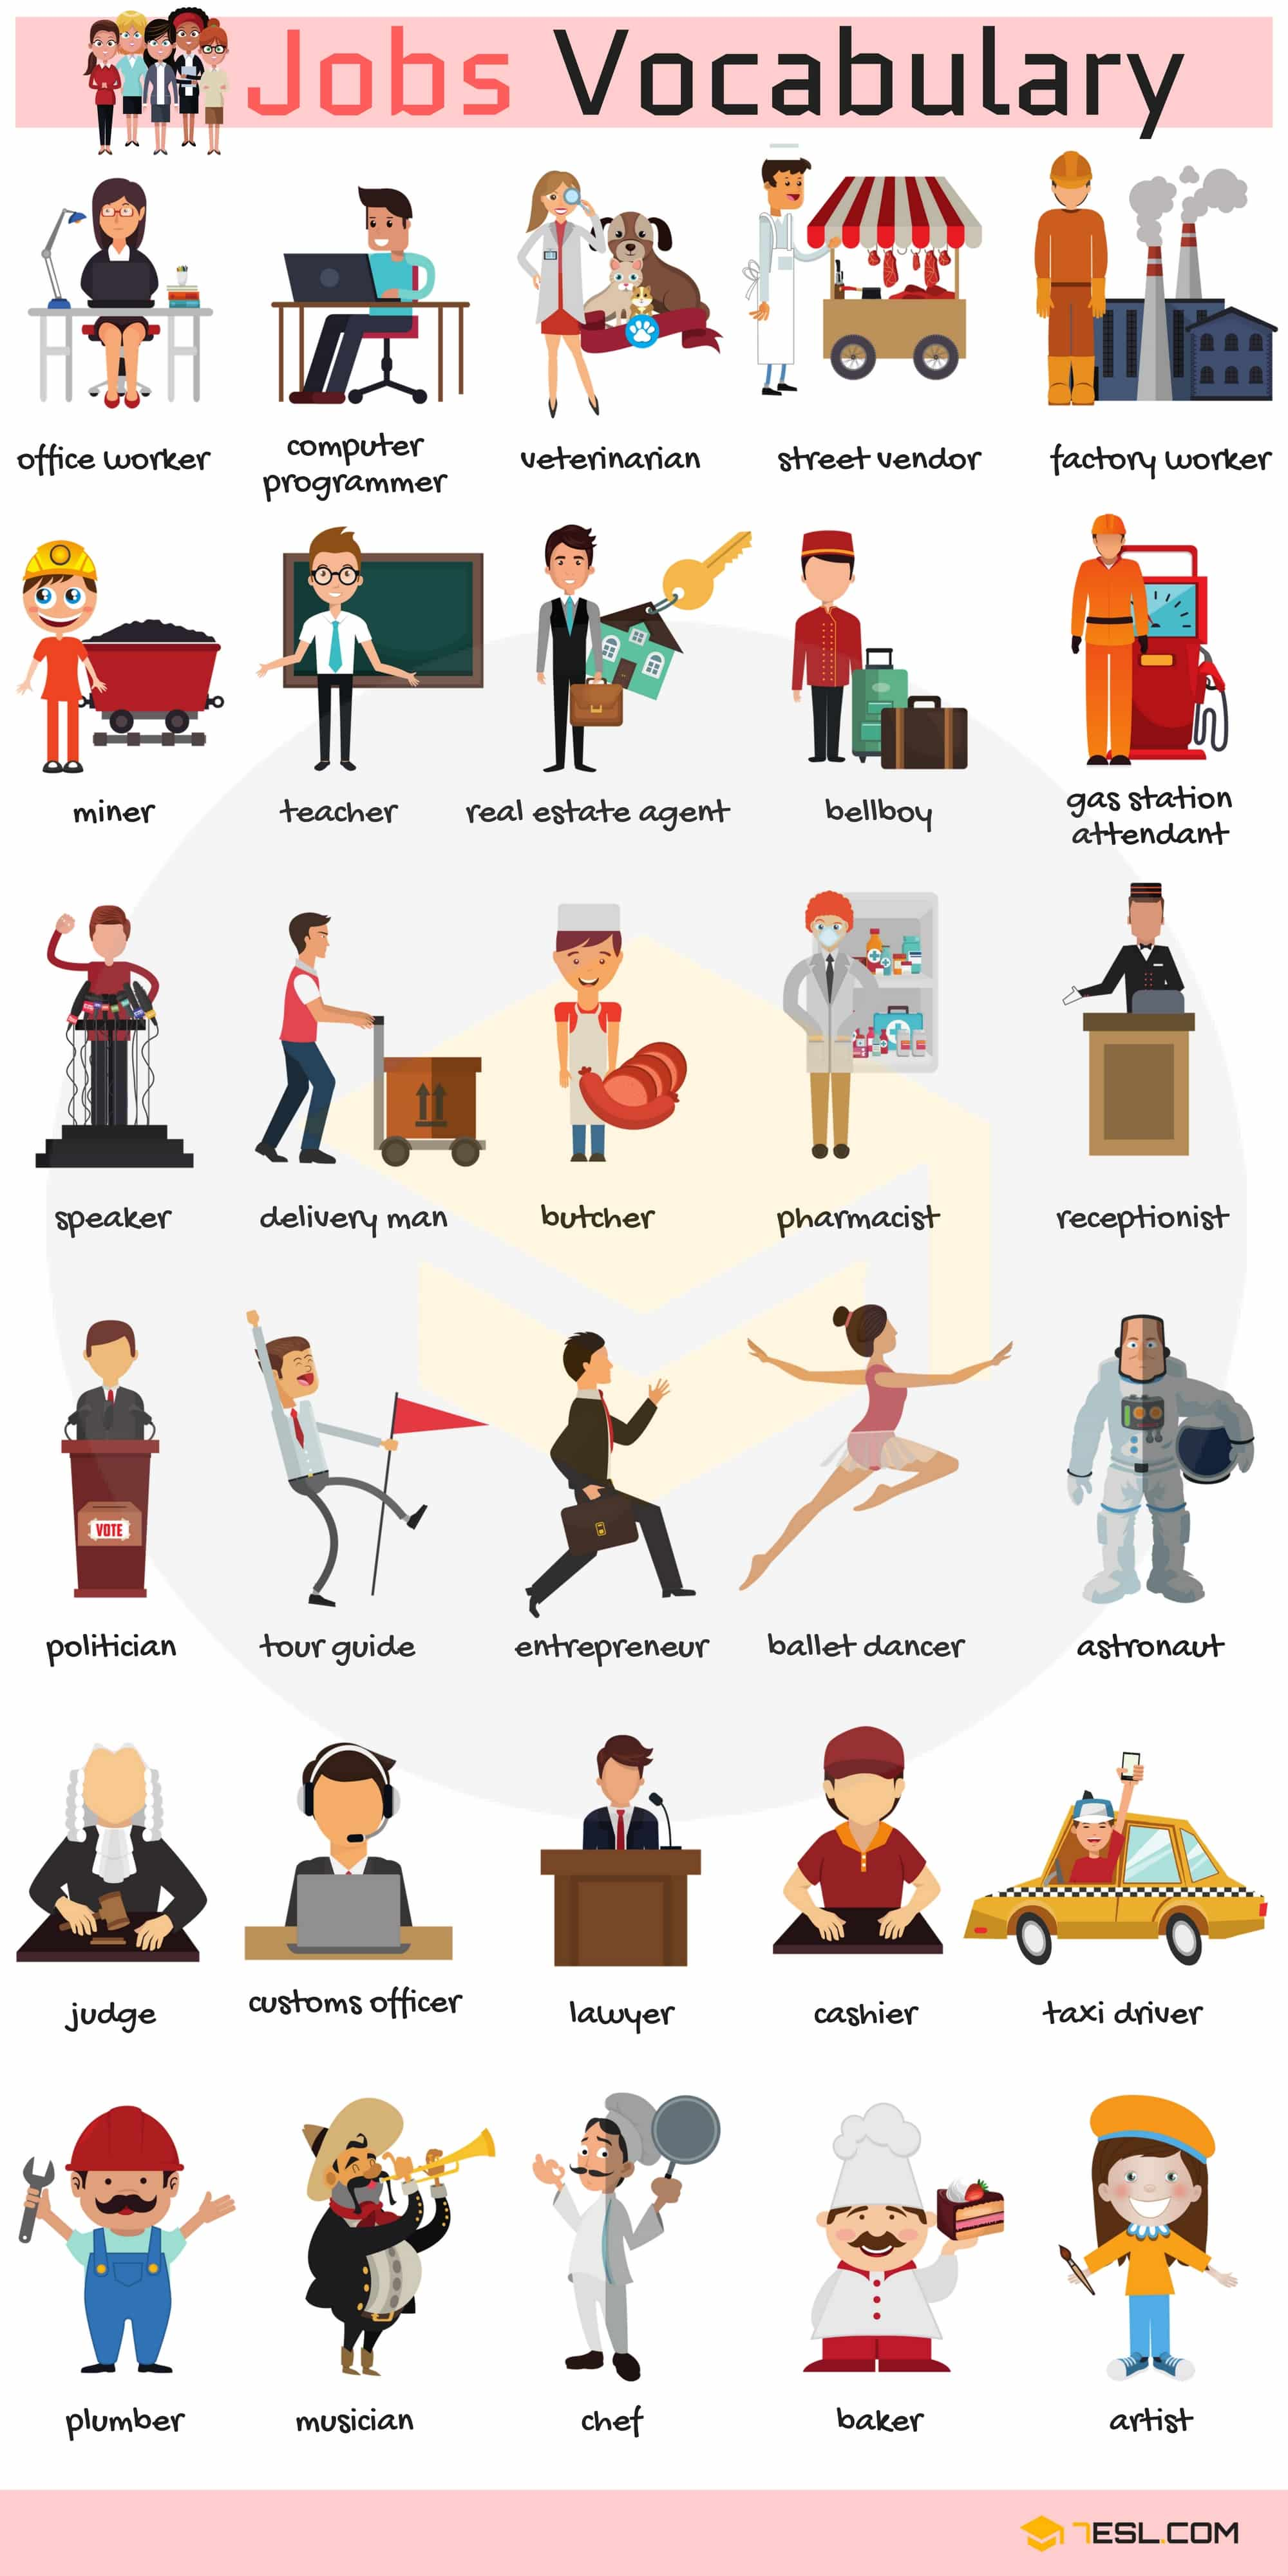 Jobs And Occupations Vocabulary